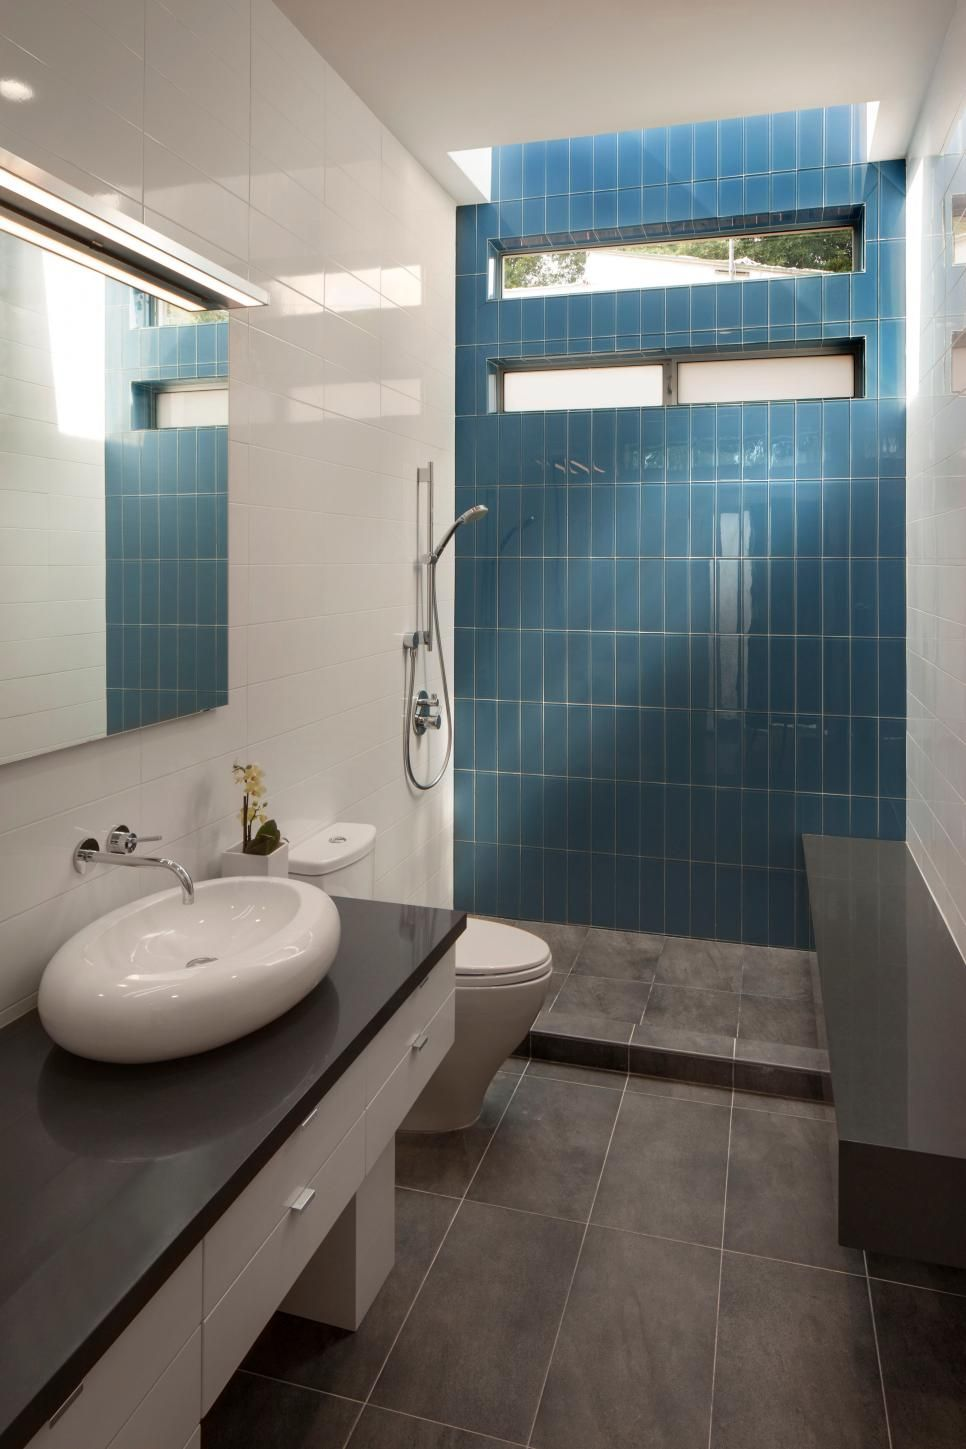 A bright blue tile accent wall at the back of the shower Bright blue tile